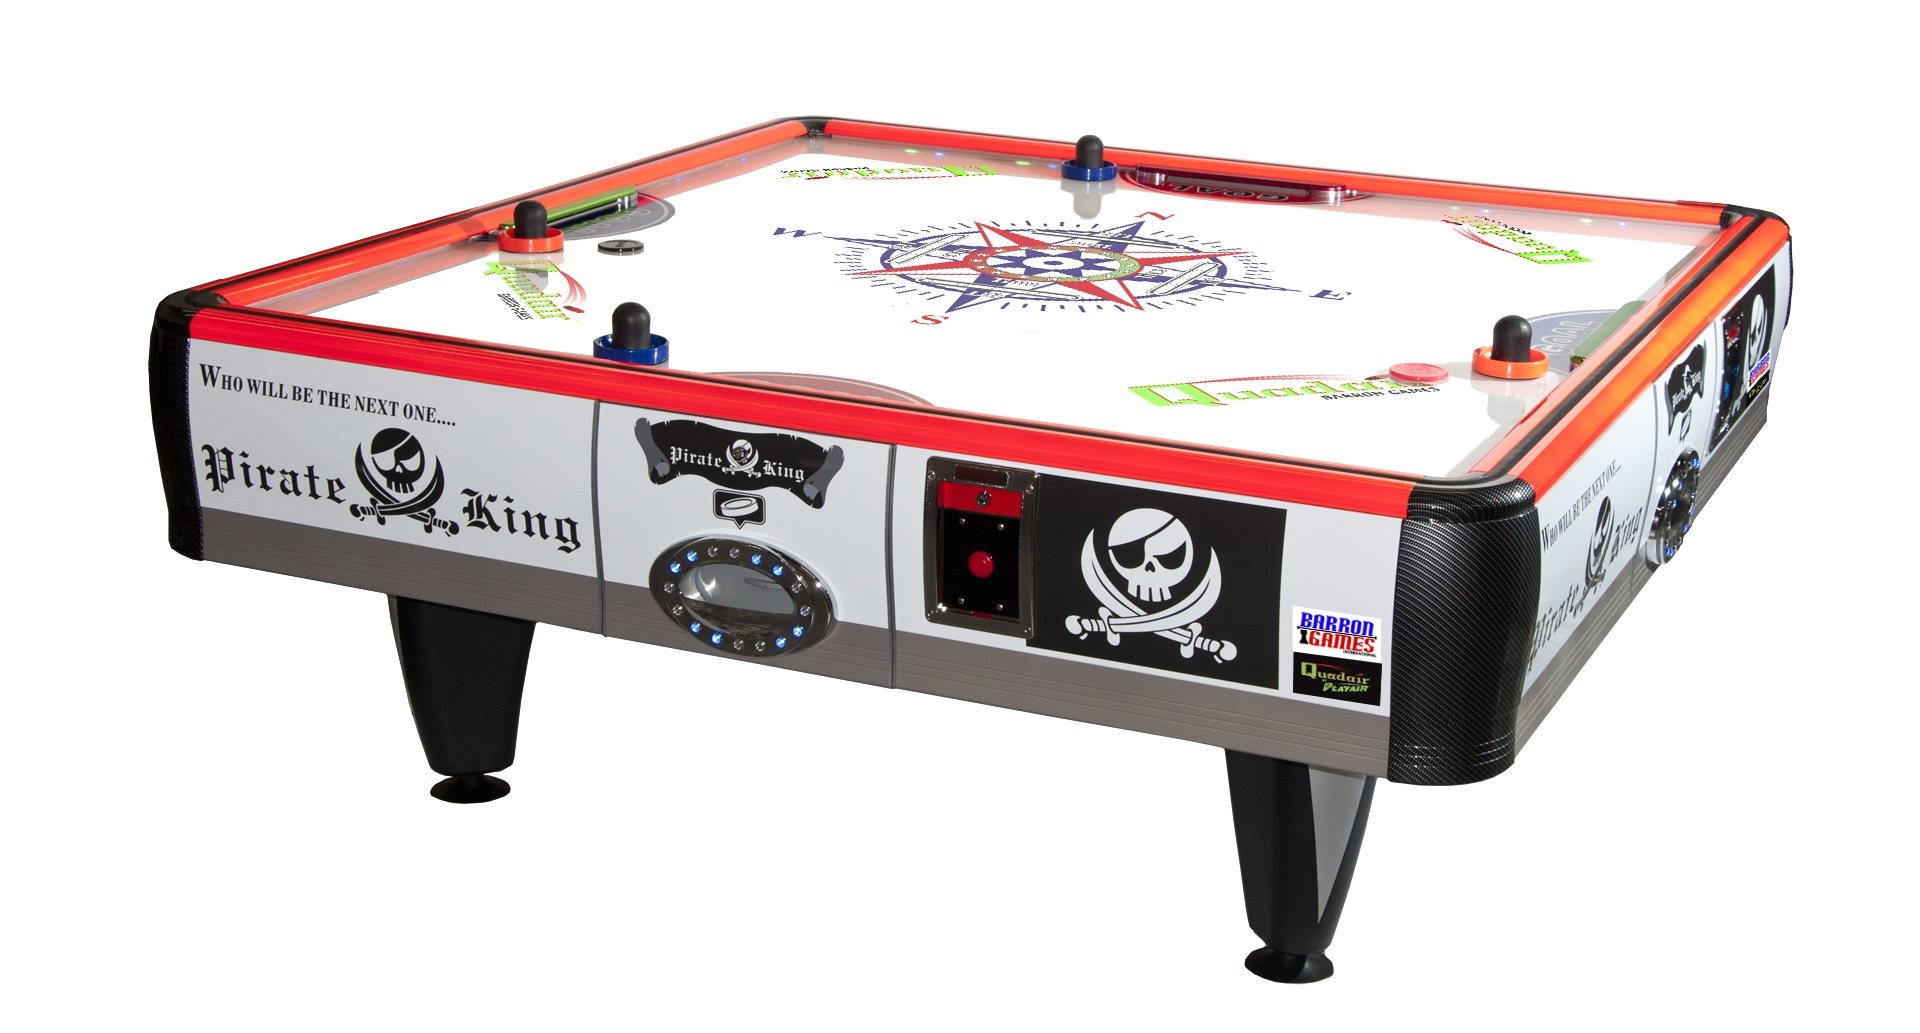 Barron Games QUAD AIR Redemption Air Hockey Table